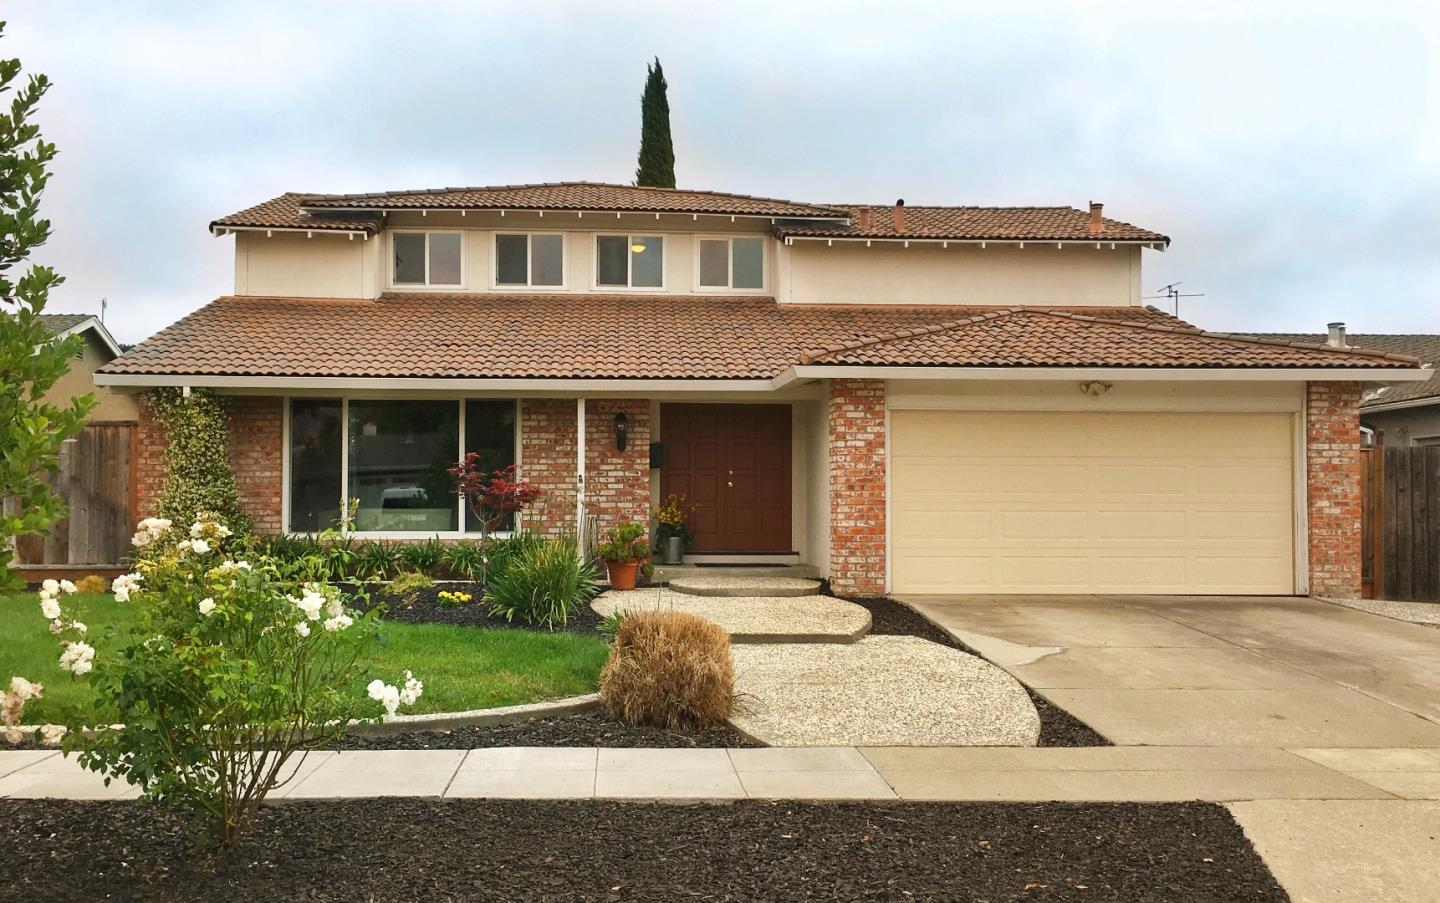 Single Family Home for Sale at 6299 Culvert Drive San Jose, California 95123 United States